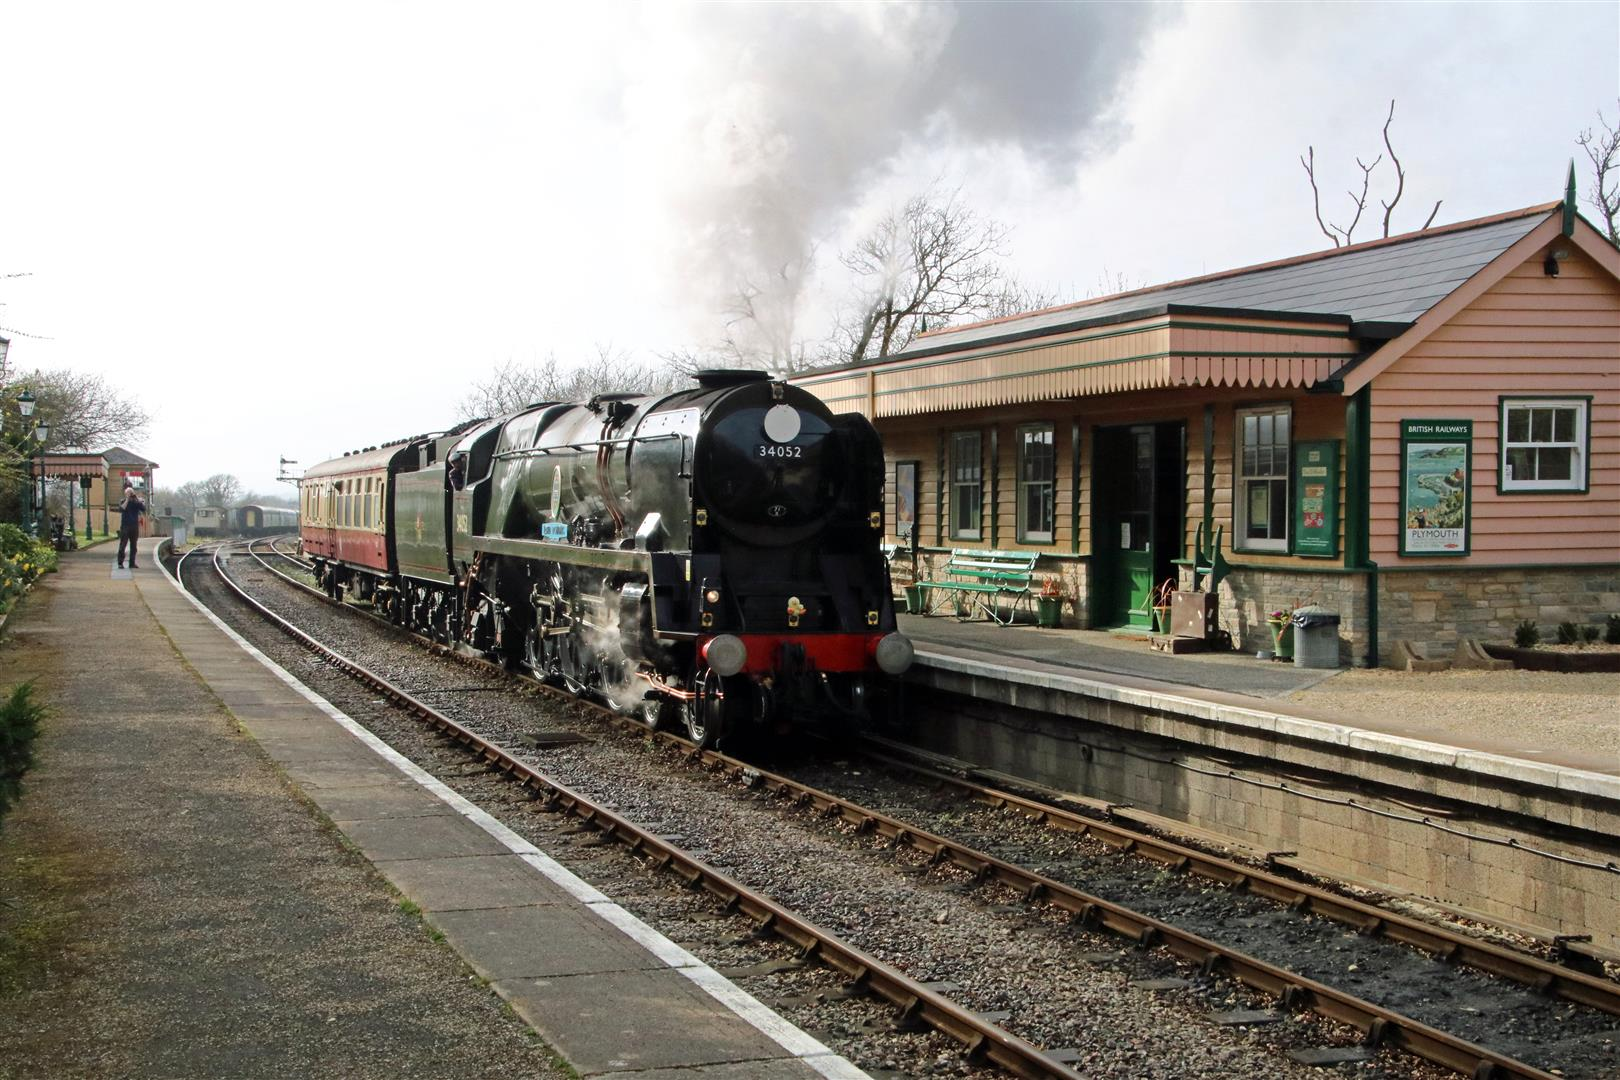 Jeremy Hosking's 'West Country', No. 34046  Braunton  (running as No. 34052  Lord Dowding ) nears the end of its journey as it steams through Harman's Cross on its way to Swanage on March 28. ANDREW P. M. WRIGHT